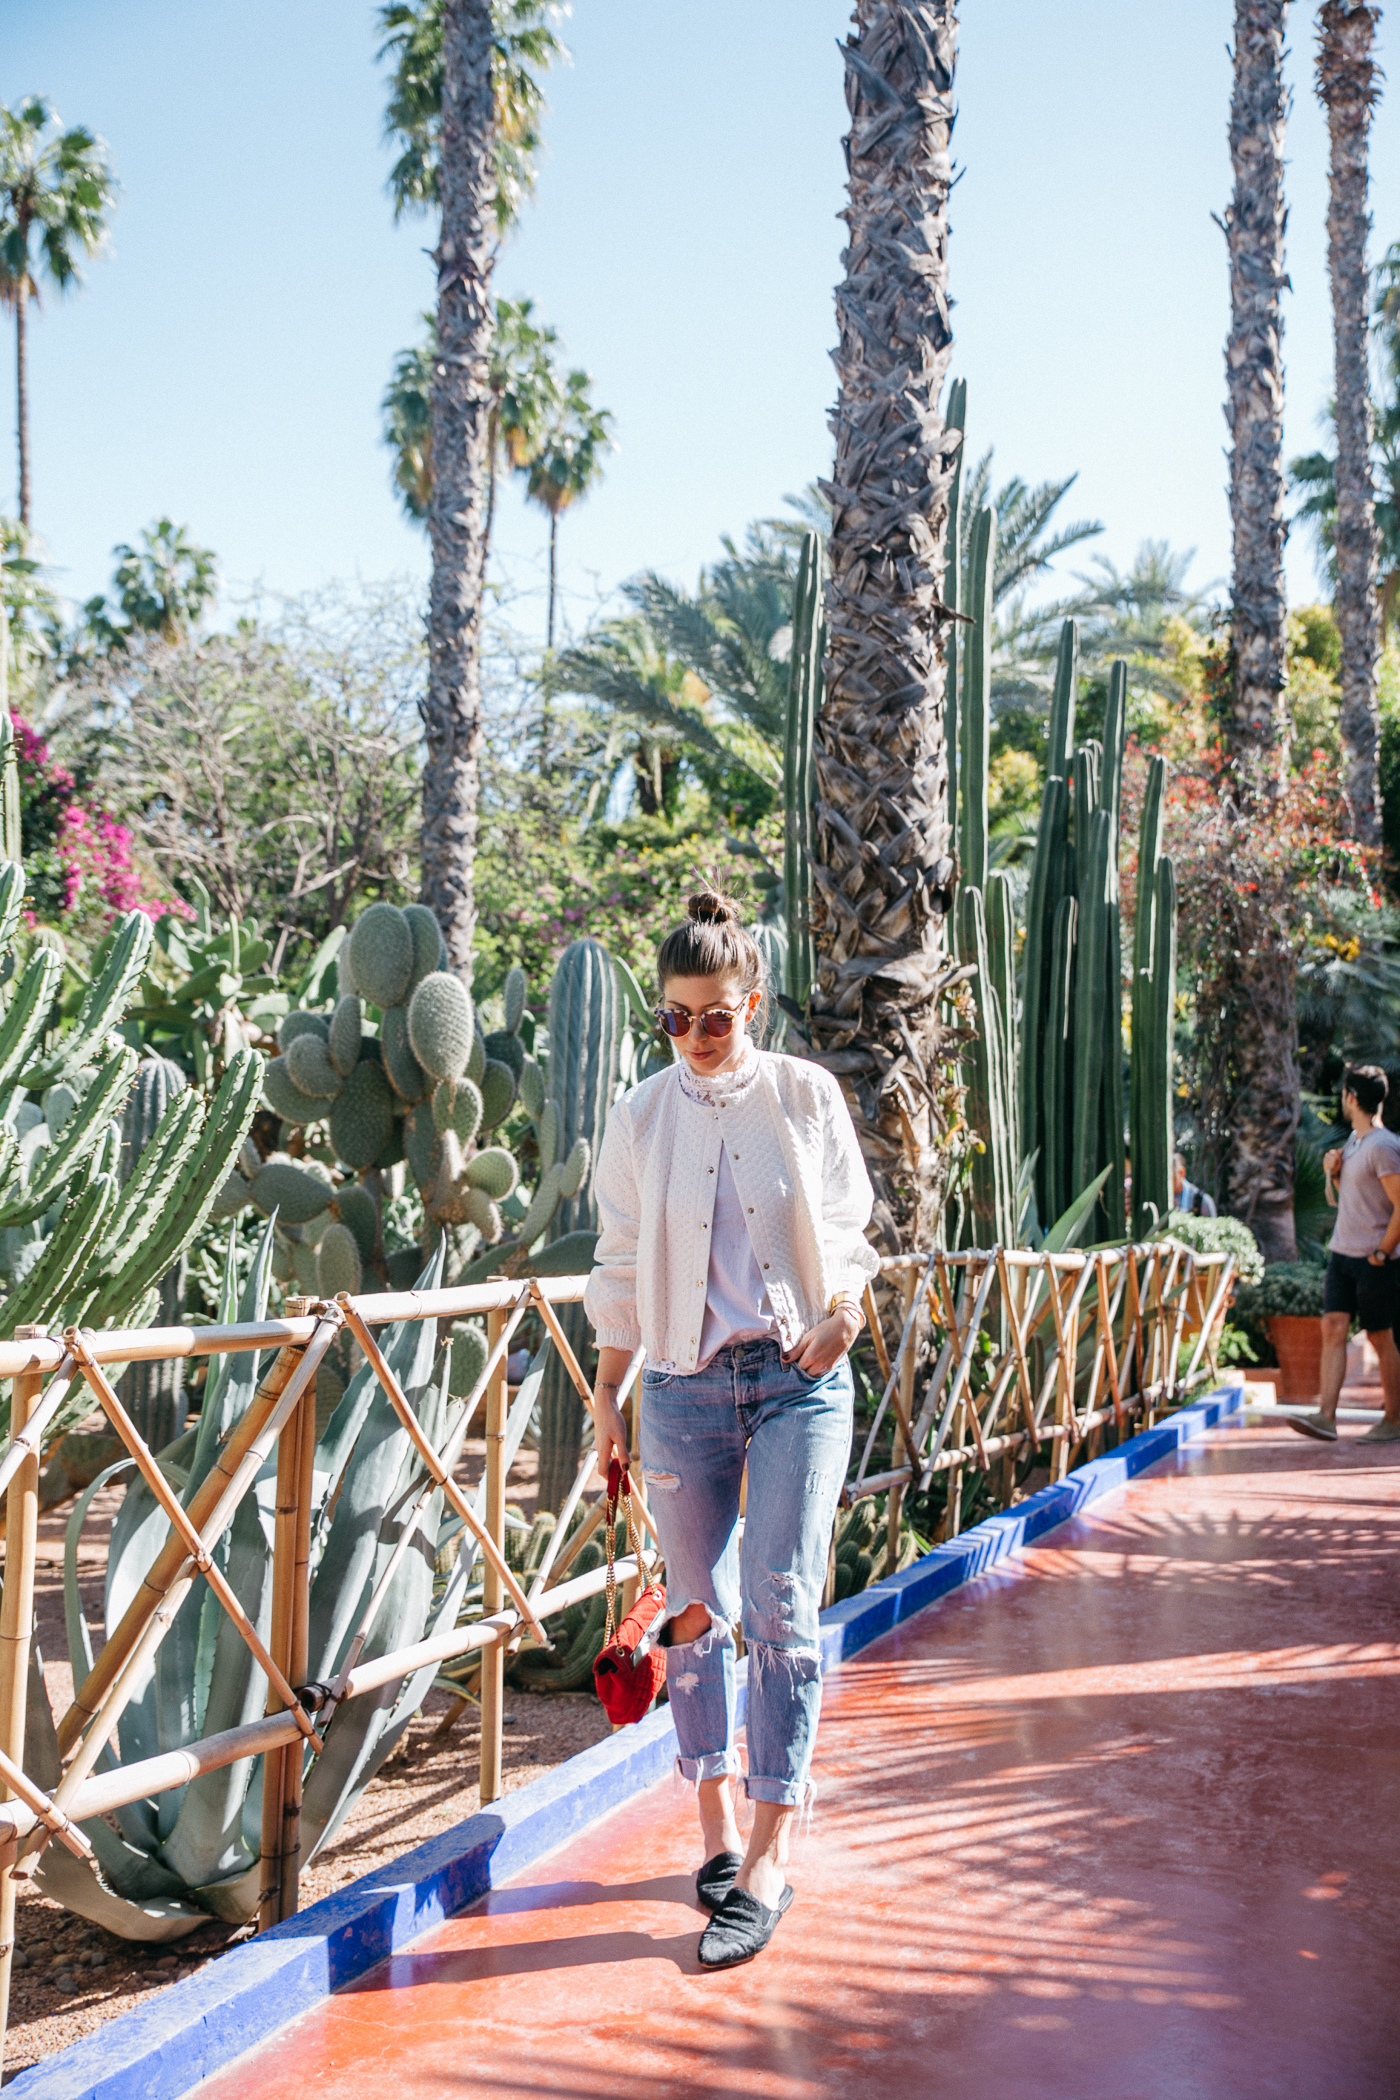 Le jardin majorelle marrakech yves saint laurent garden for Jardin yves saint laurent marrakech